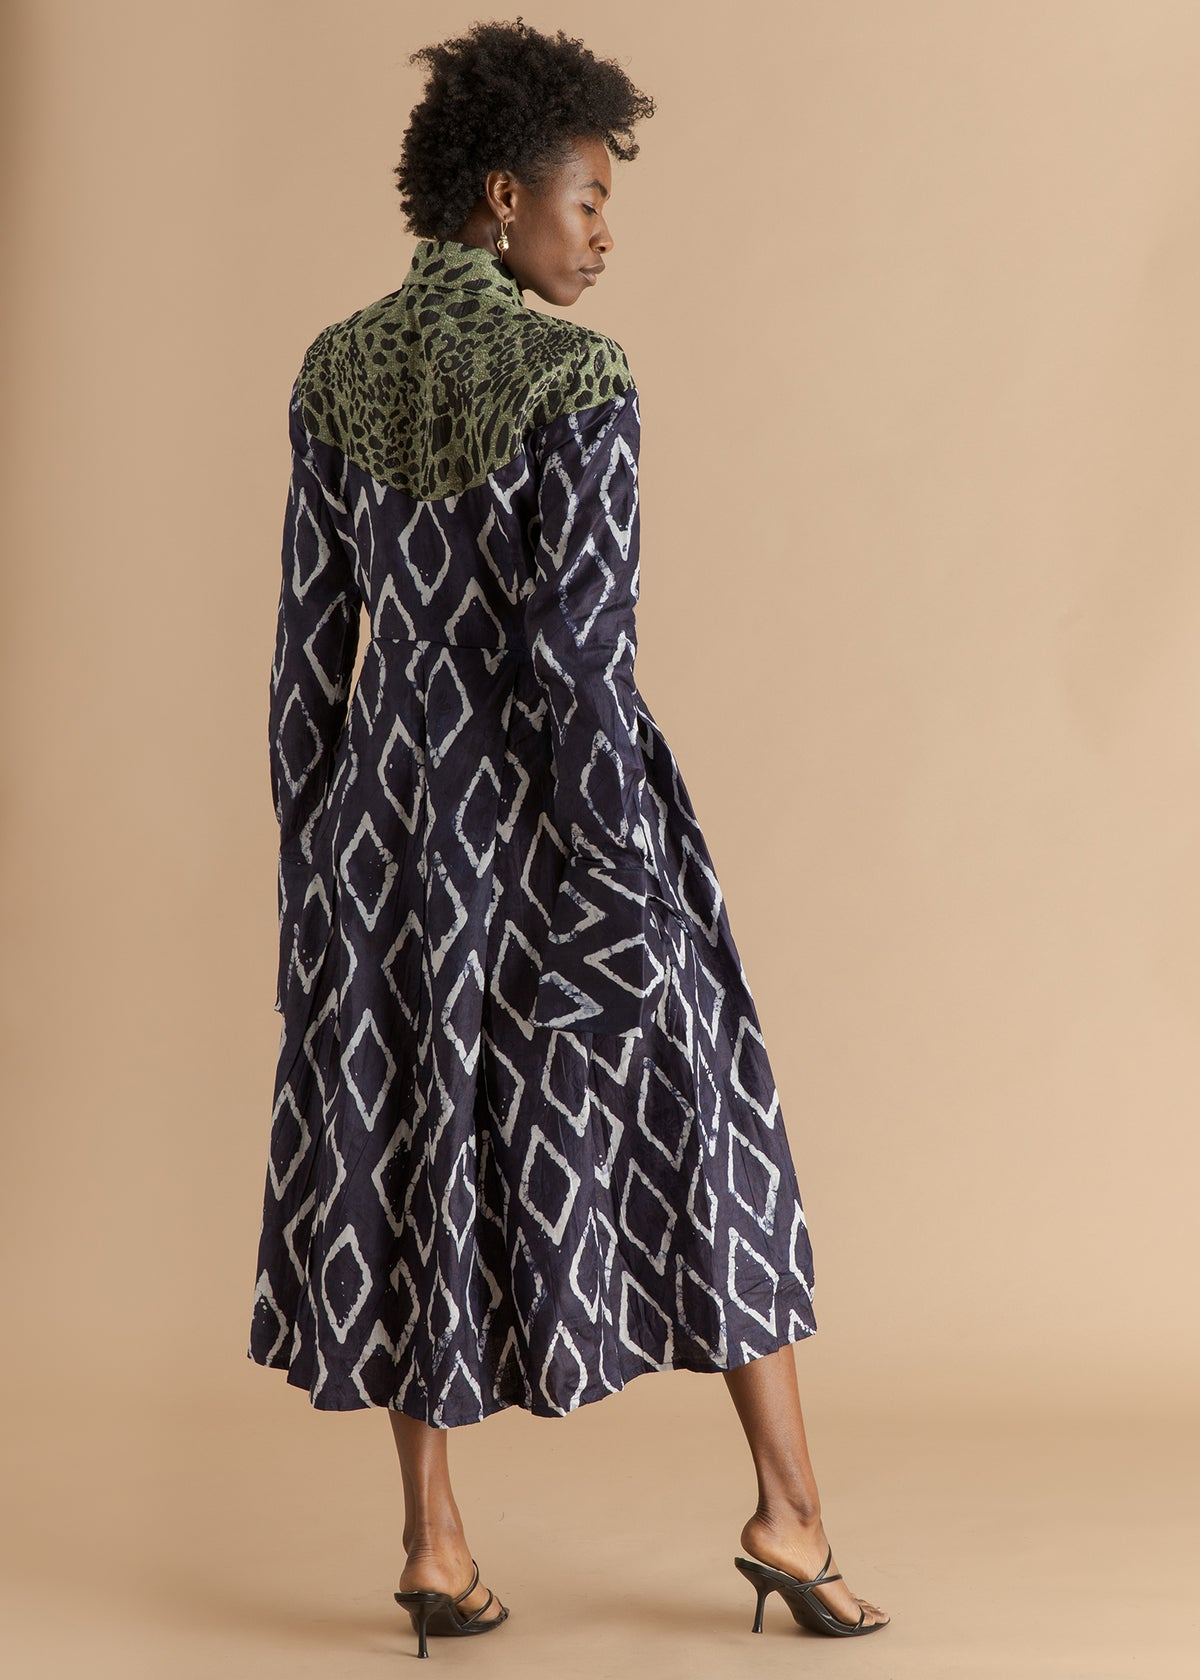 Fruché indigo adire printed midi dress